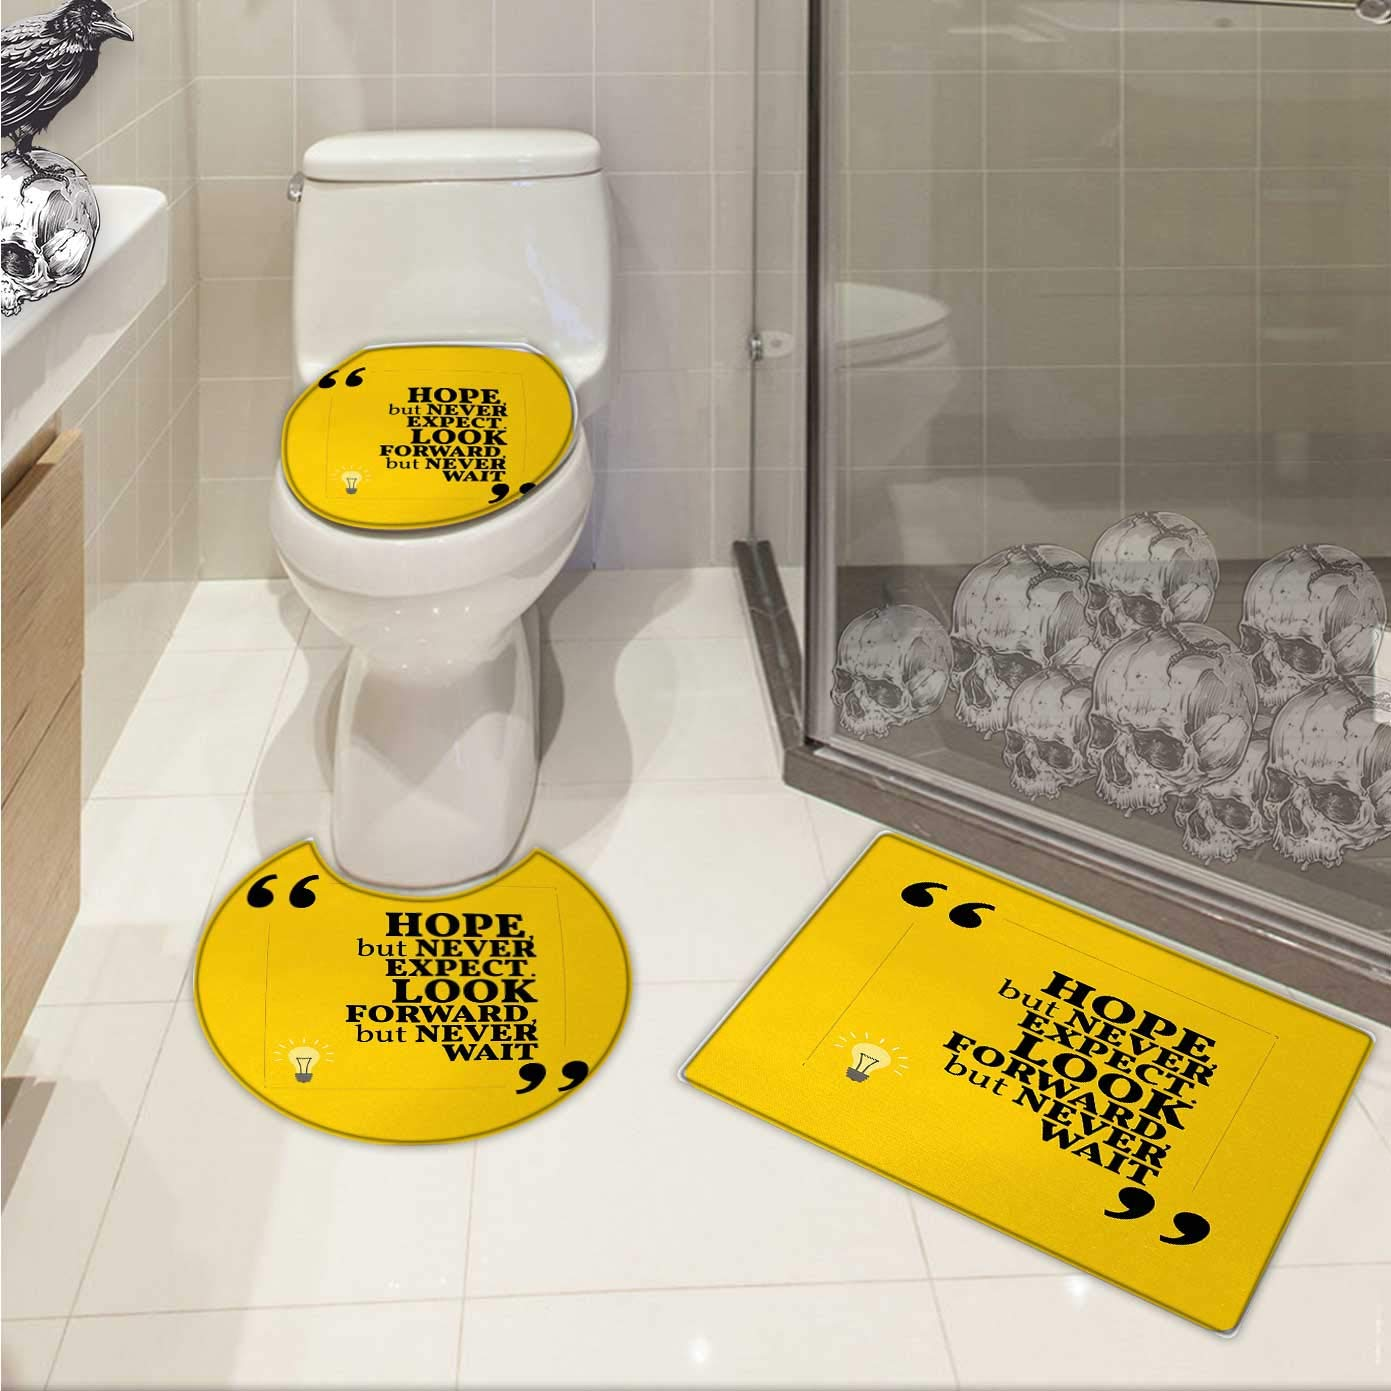 Carl morris hope bathroom toilet mat set message in quotation marks with square frame on yellow backdrop custom made rug set yellow pale yellow and black